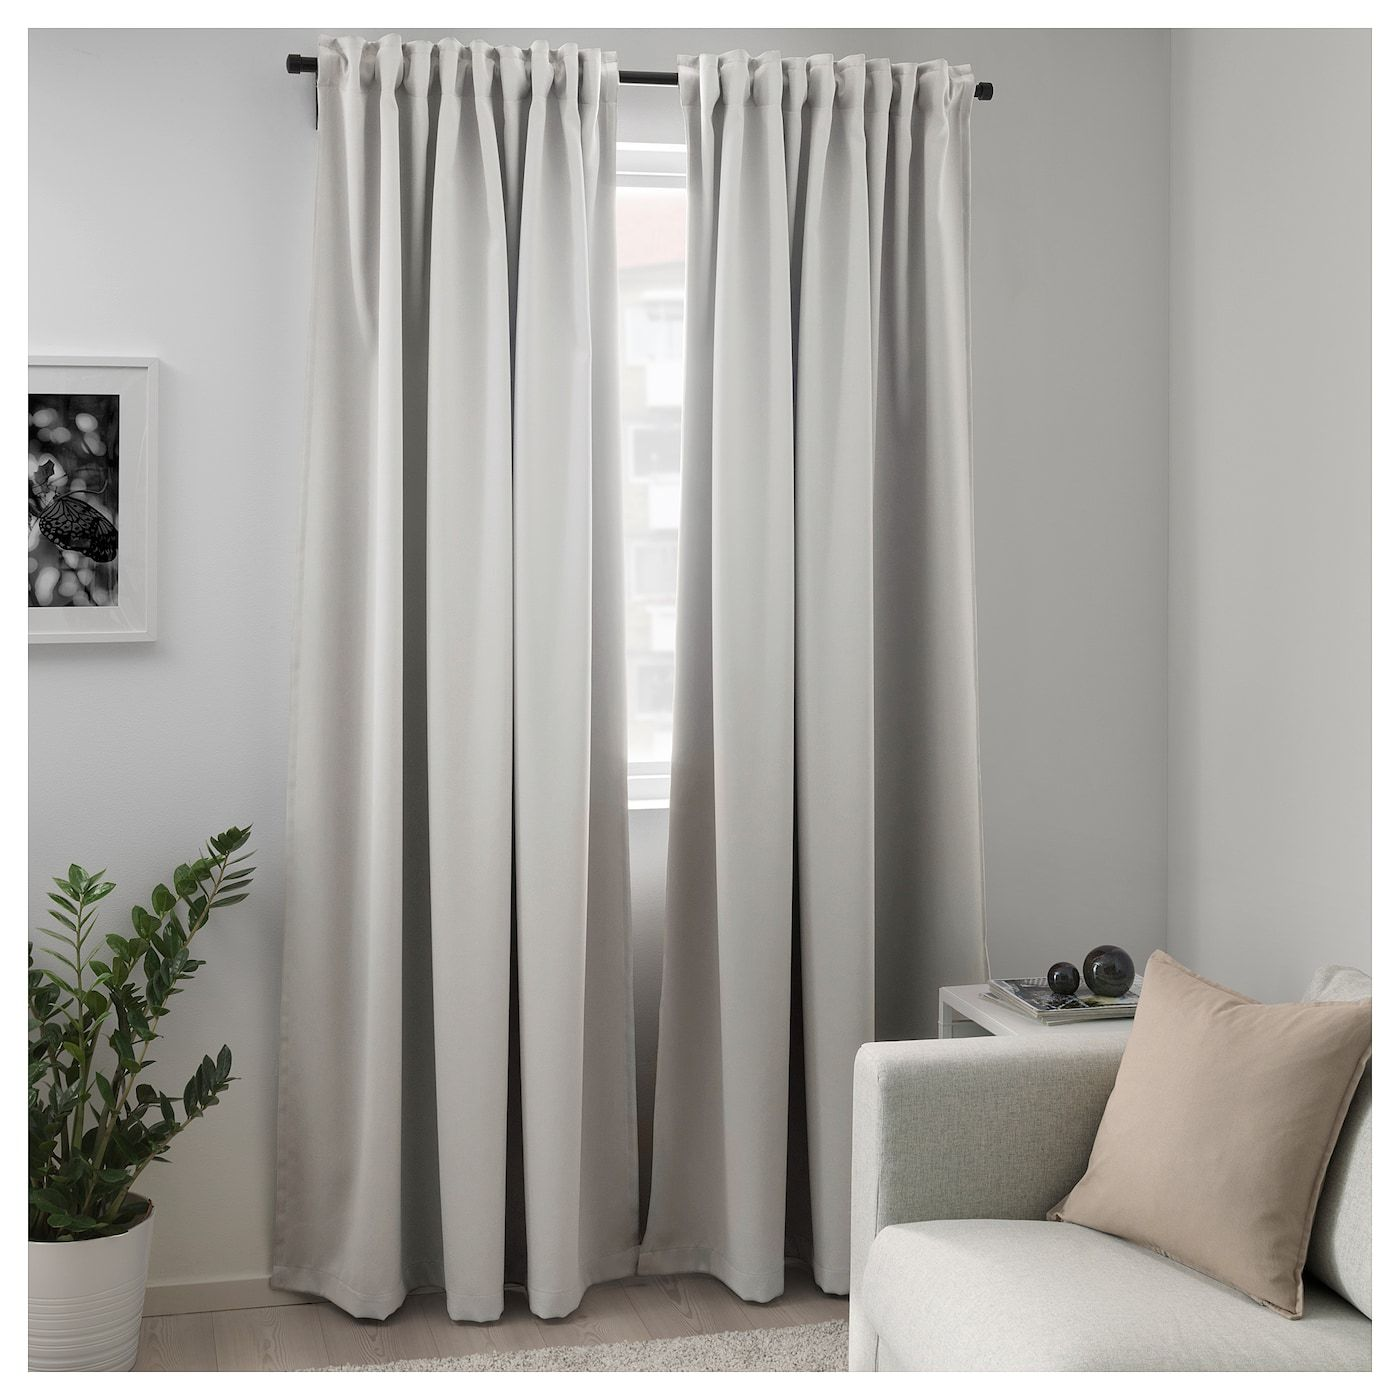 Majgull Room Darkening Curtains 1 Pair Light Gray 57x98 Ikea Block Out Curtains Room Darkening Curtains Curtains With Blinds